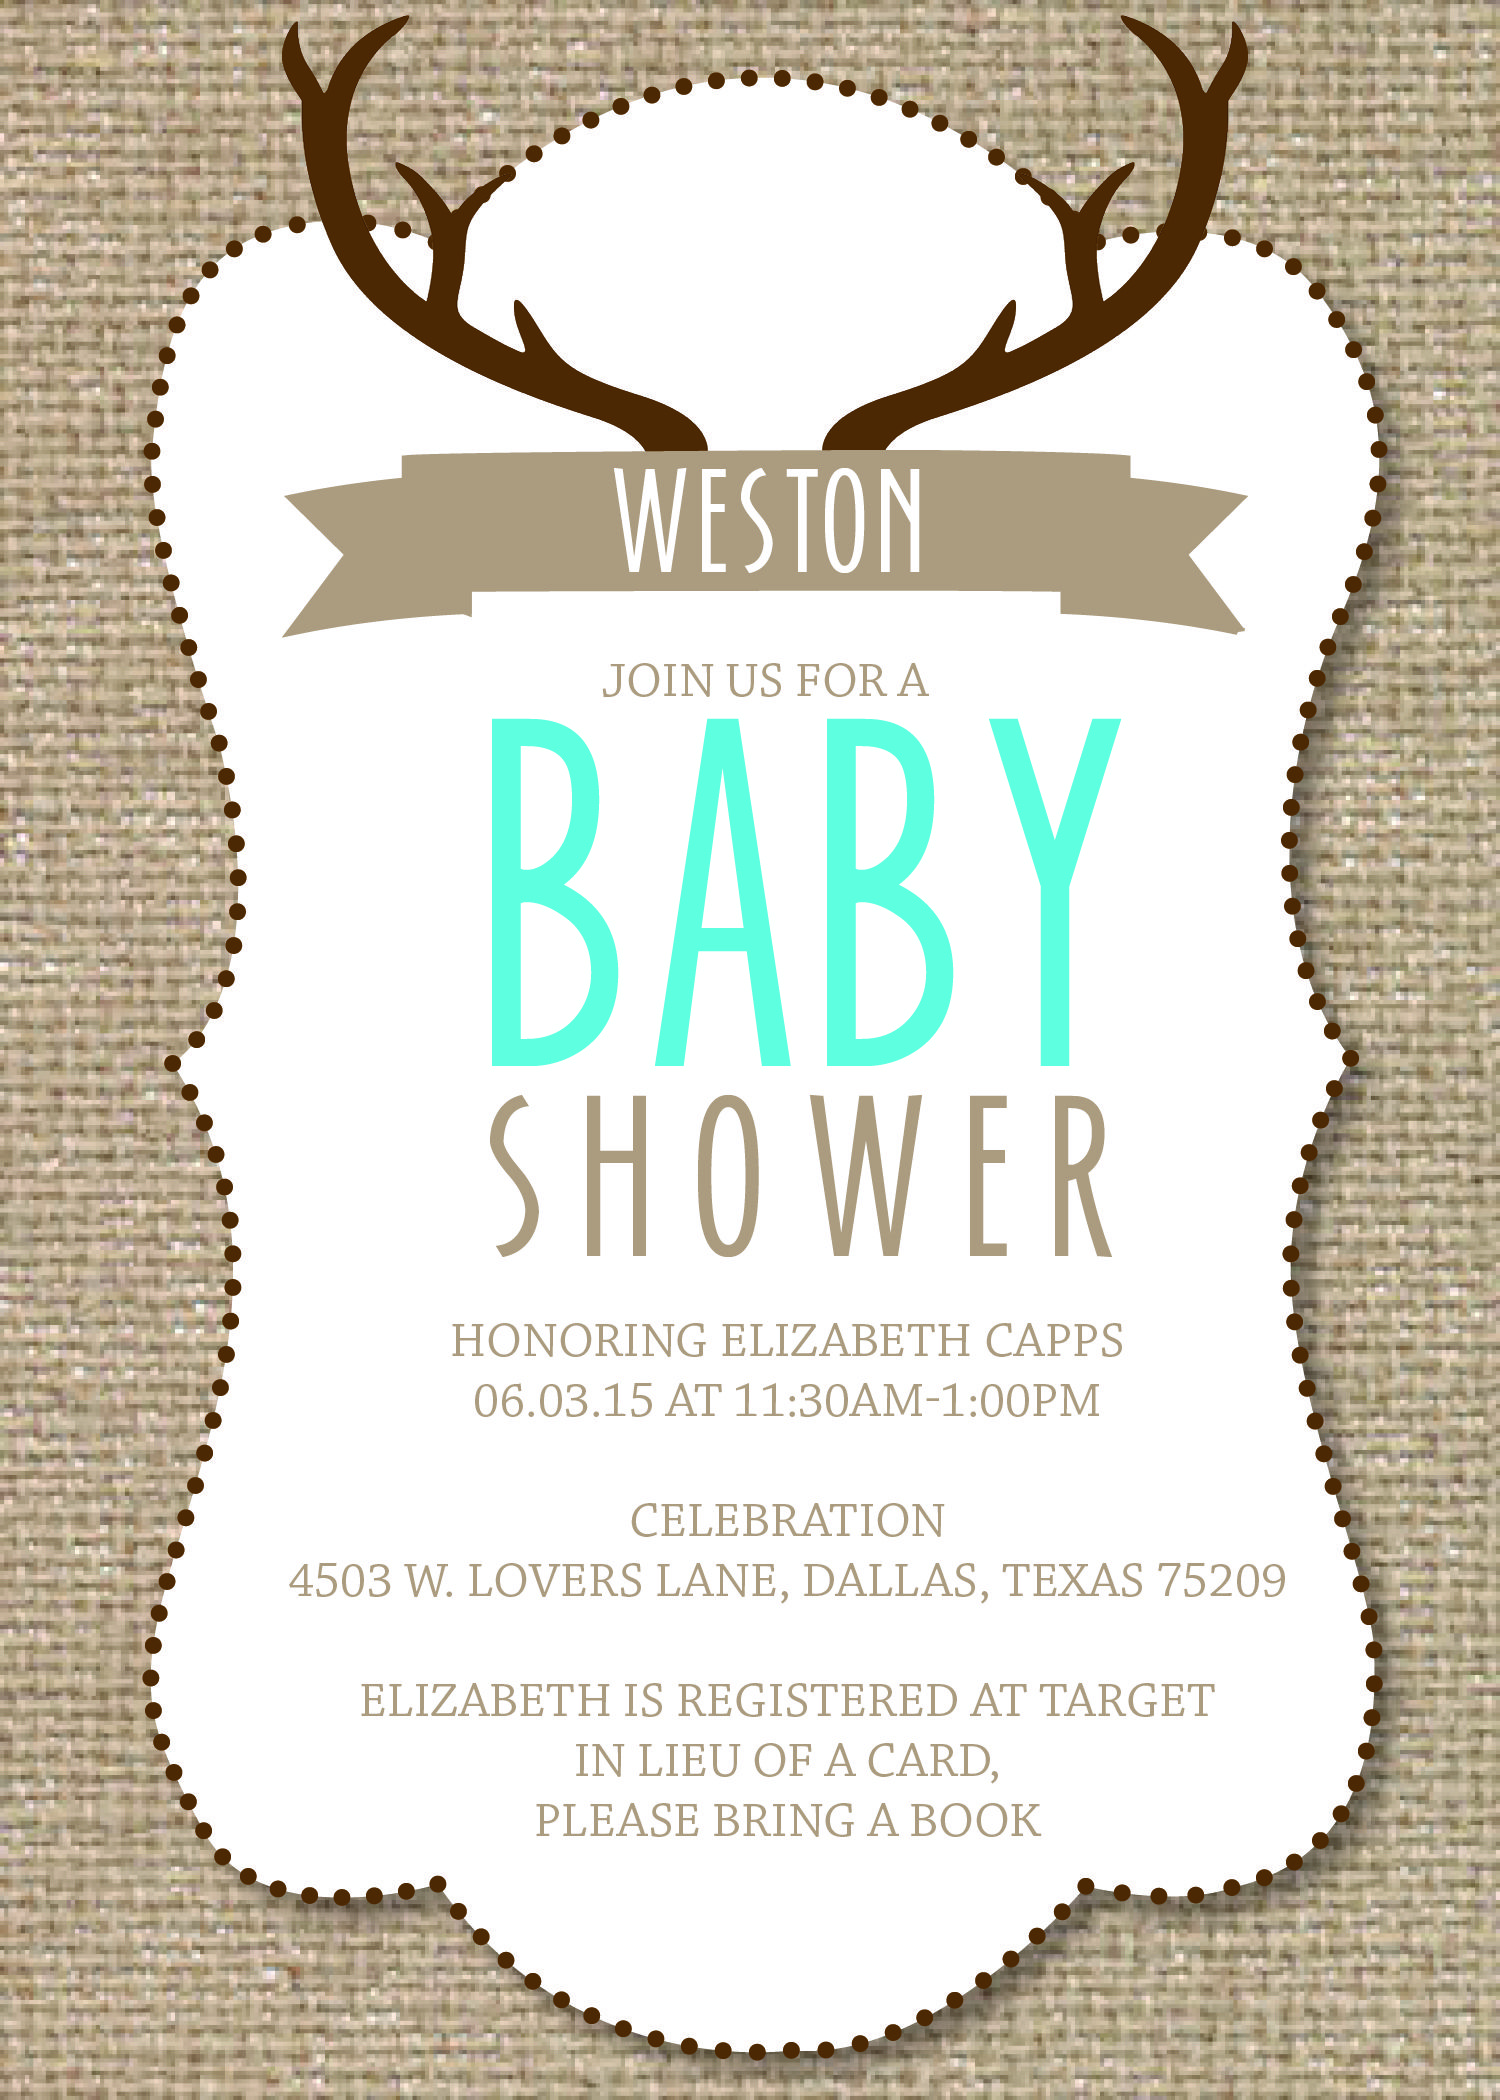 Capturing the rustic hunting theme of the baby boys room in his capturing the rustic hunting theme of the baby boys room in his customized baby shower invitation filmwisefo